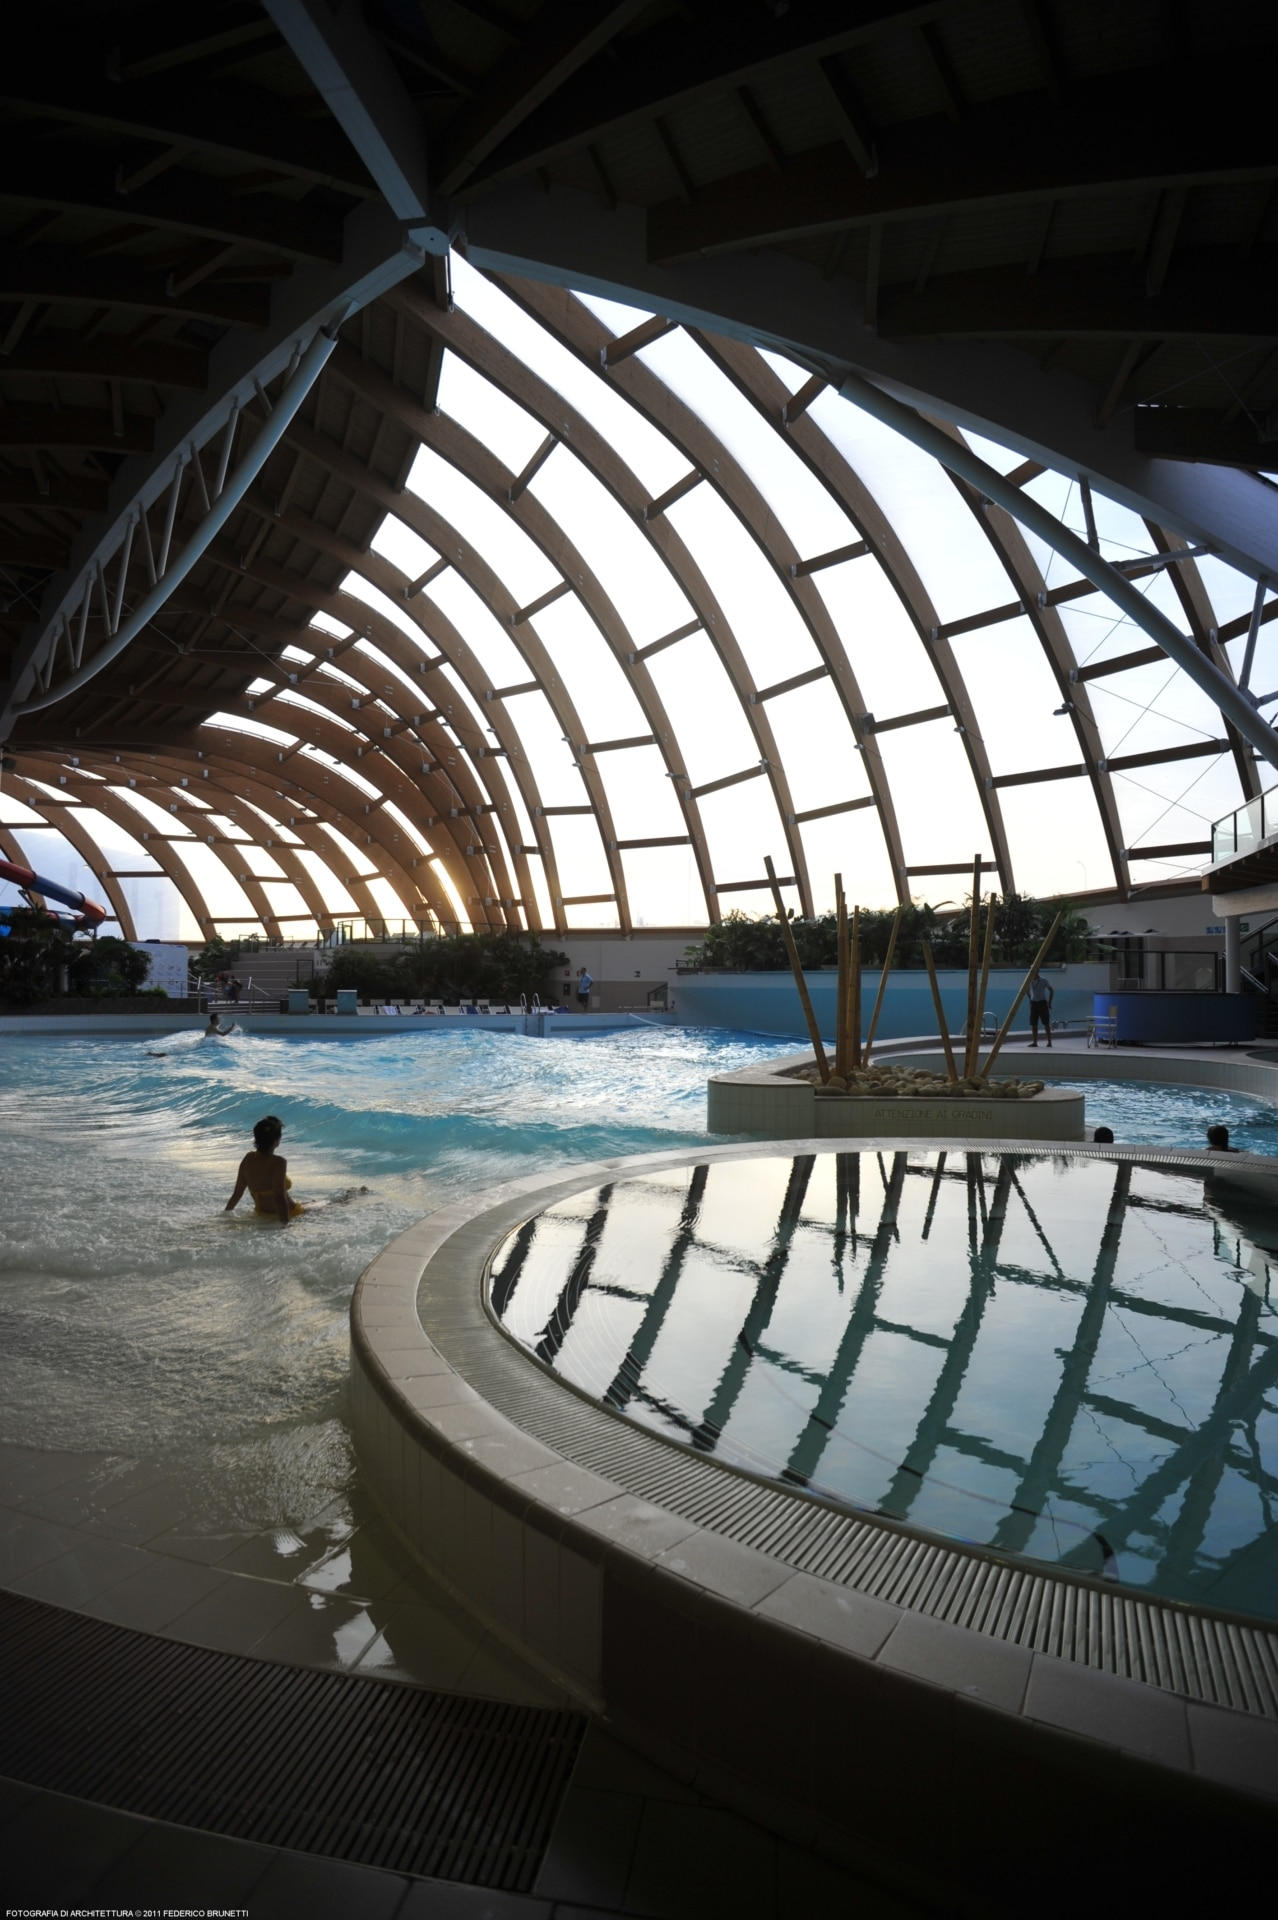 AcquaWorld is Italy's first all-year indoor water park, under a ETFE roof with exceptional light transmission properties.